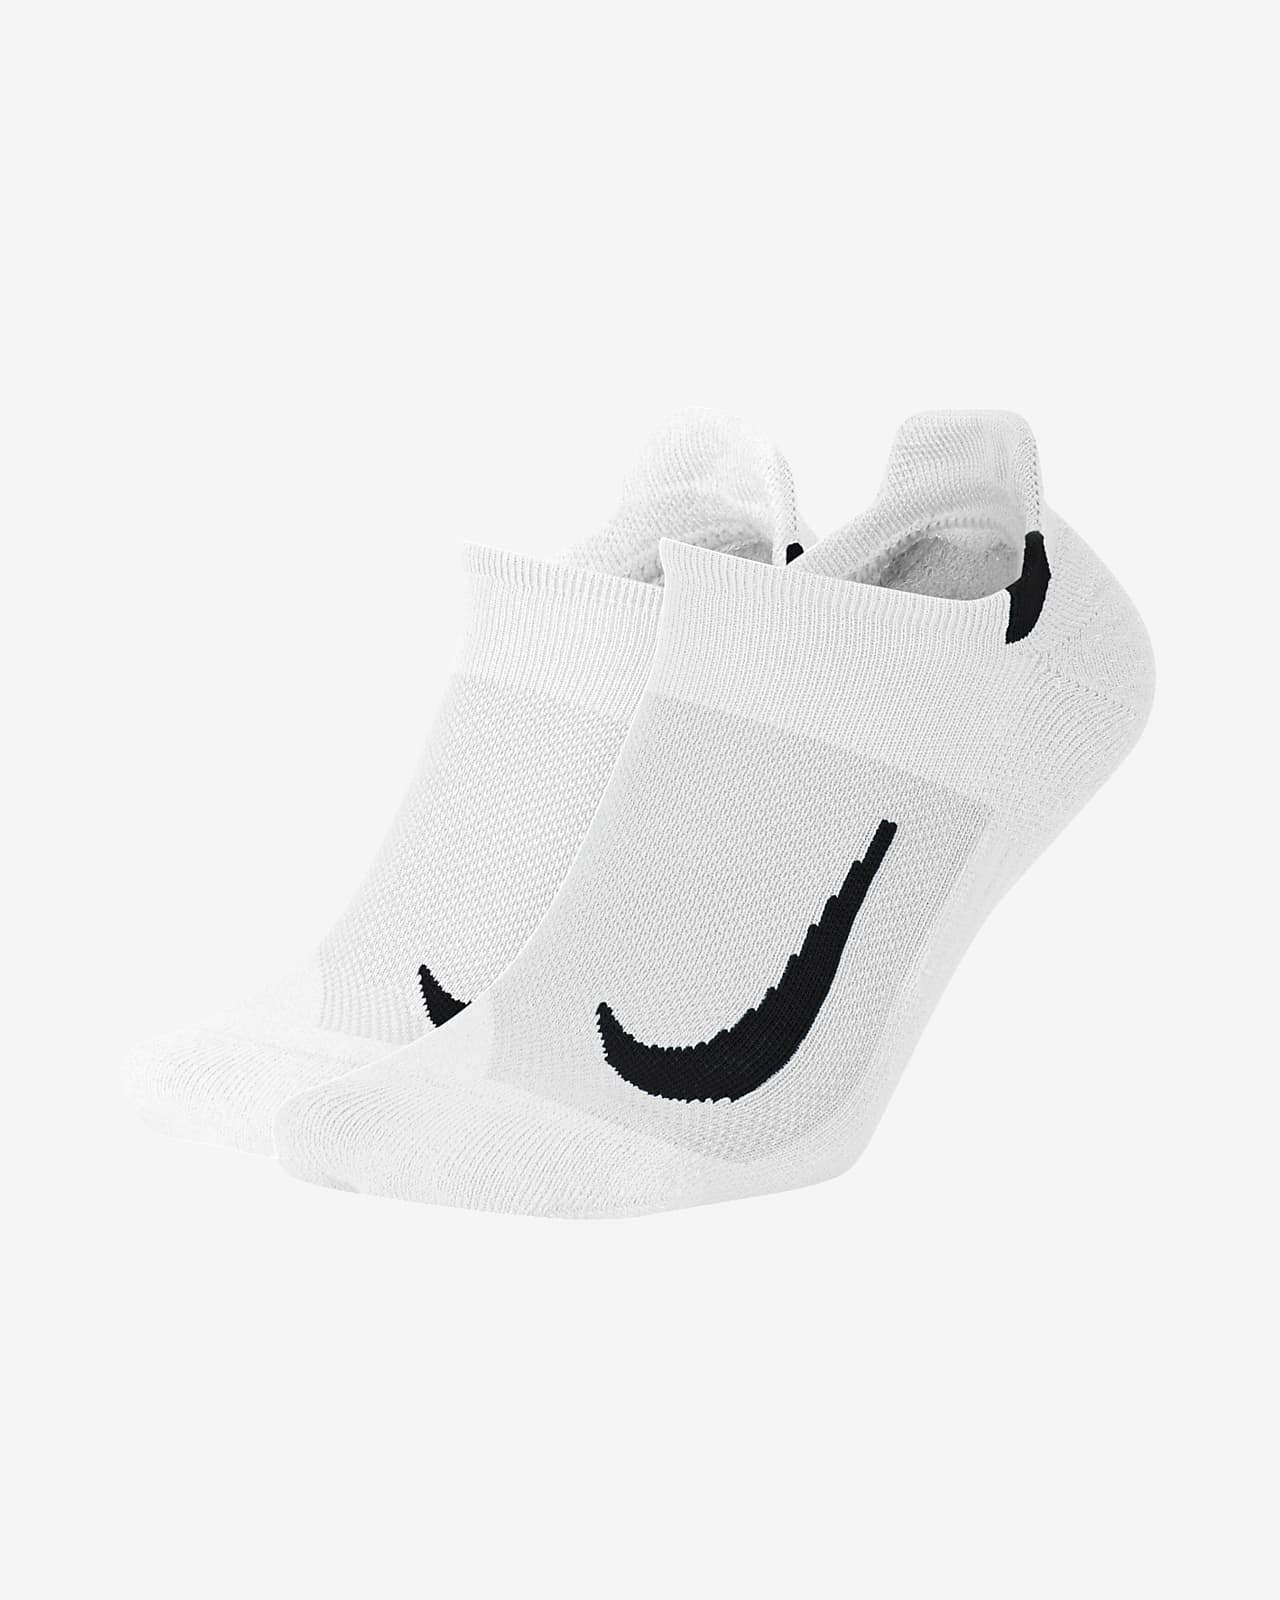 Chaussettes de running invisibles Nike Multiplier (2 paires)